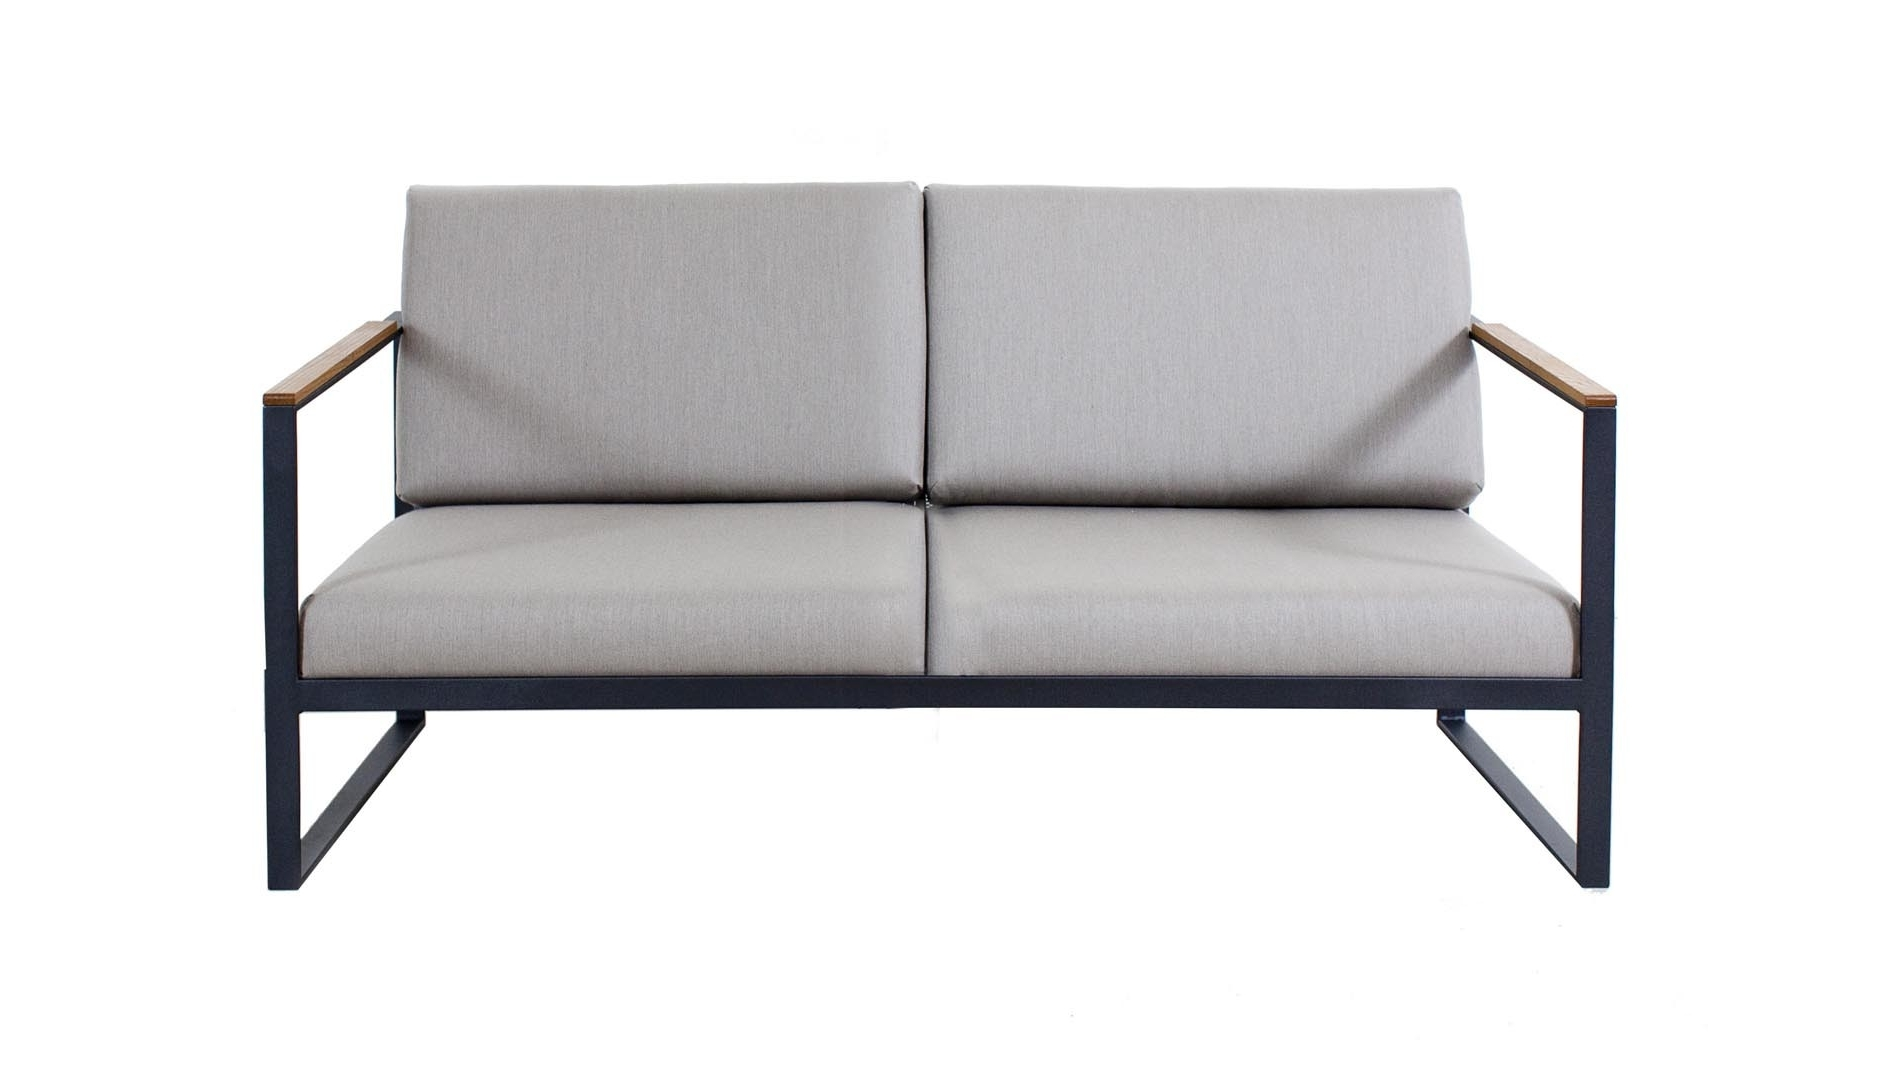 Fashionable Roshults, Easy Garden 2 Seater Sofa – Natural Grey, Buy Online At Intended For Two Seater Sofas (View 18 of 20)